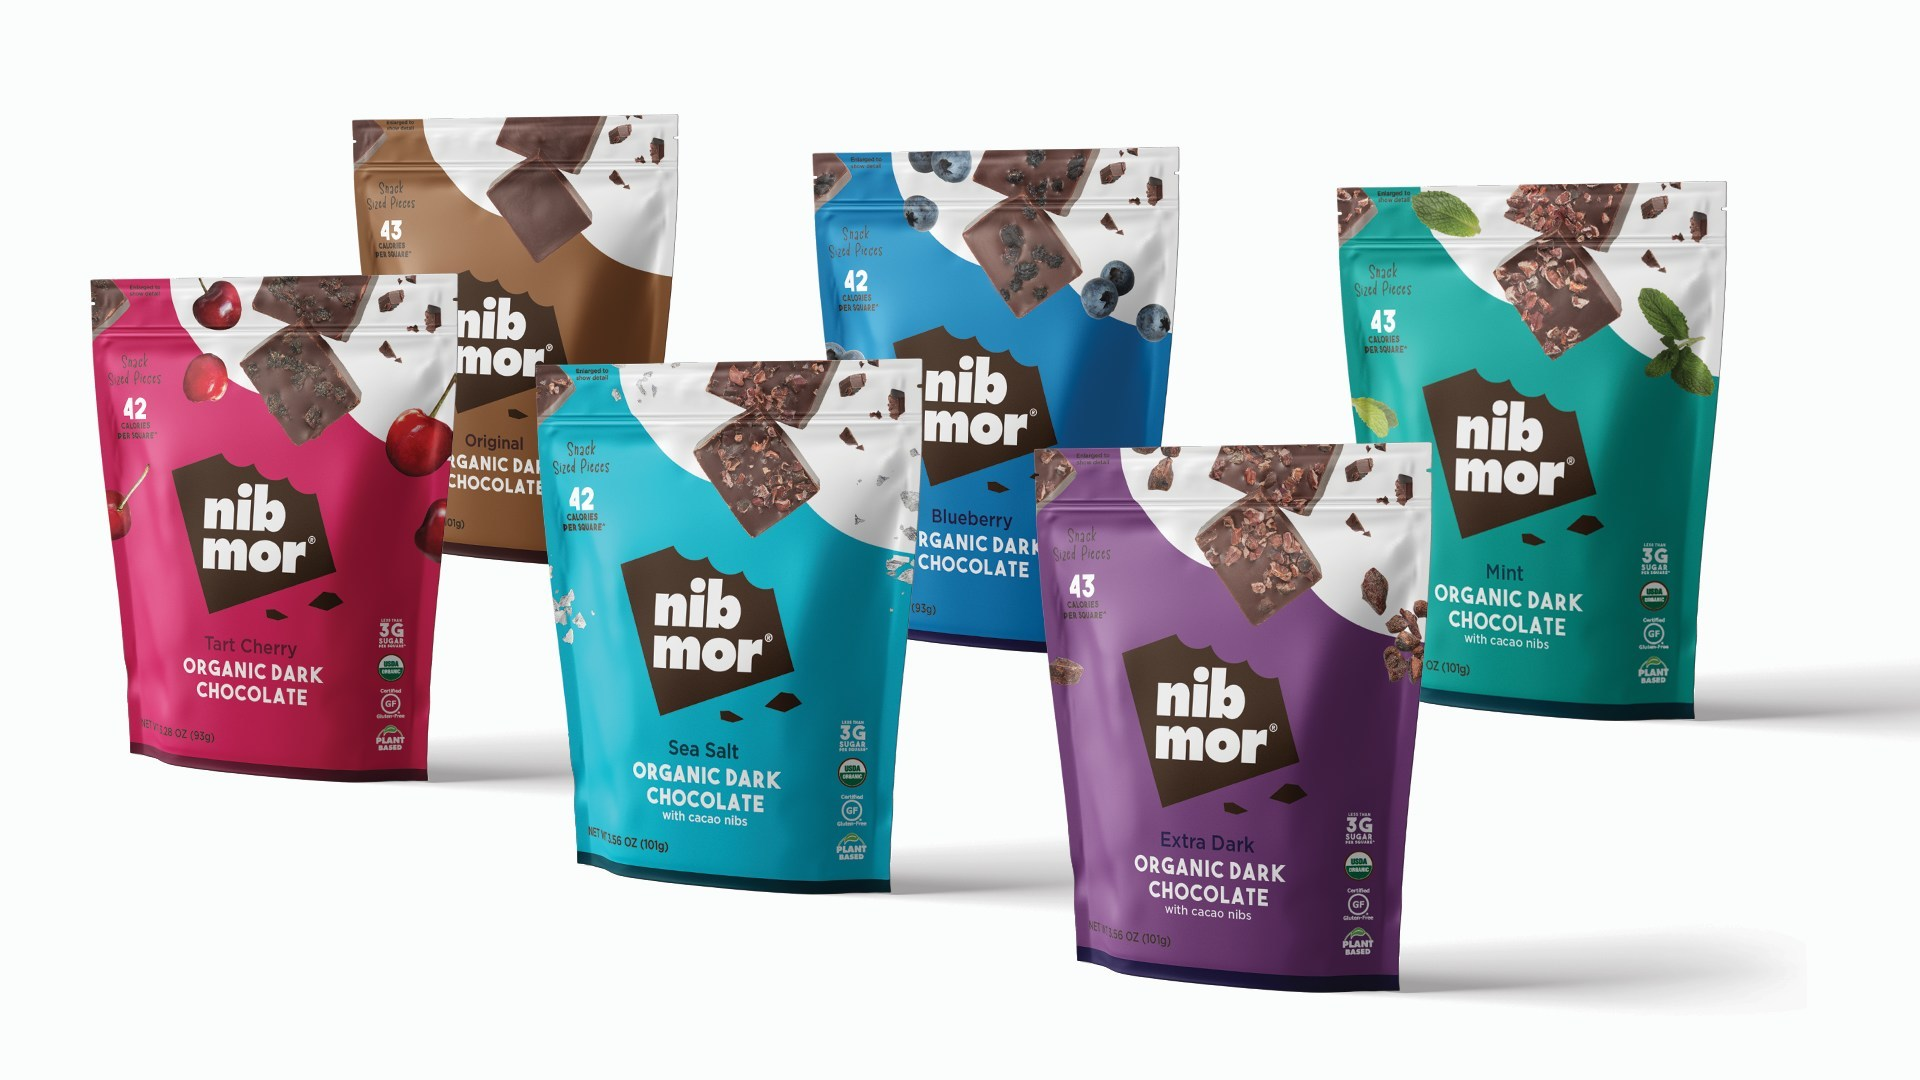 nib mor® Announces Product Rebrand Along with New Packaging